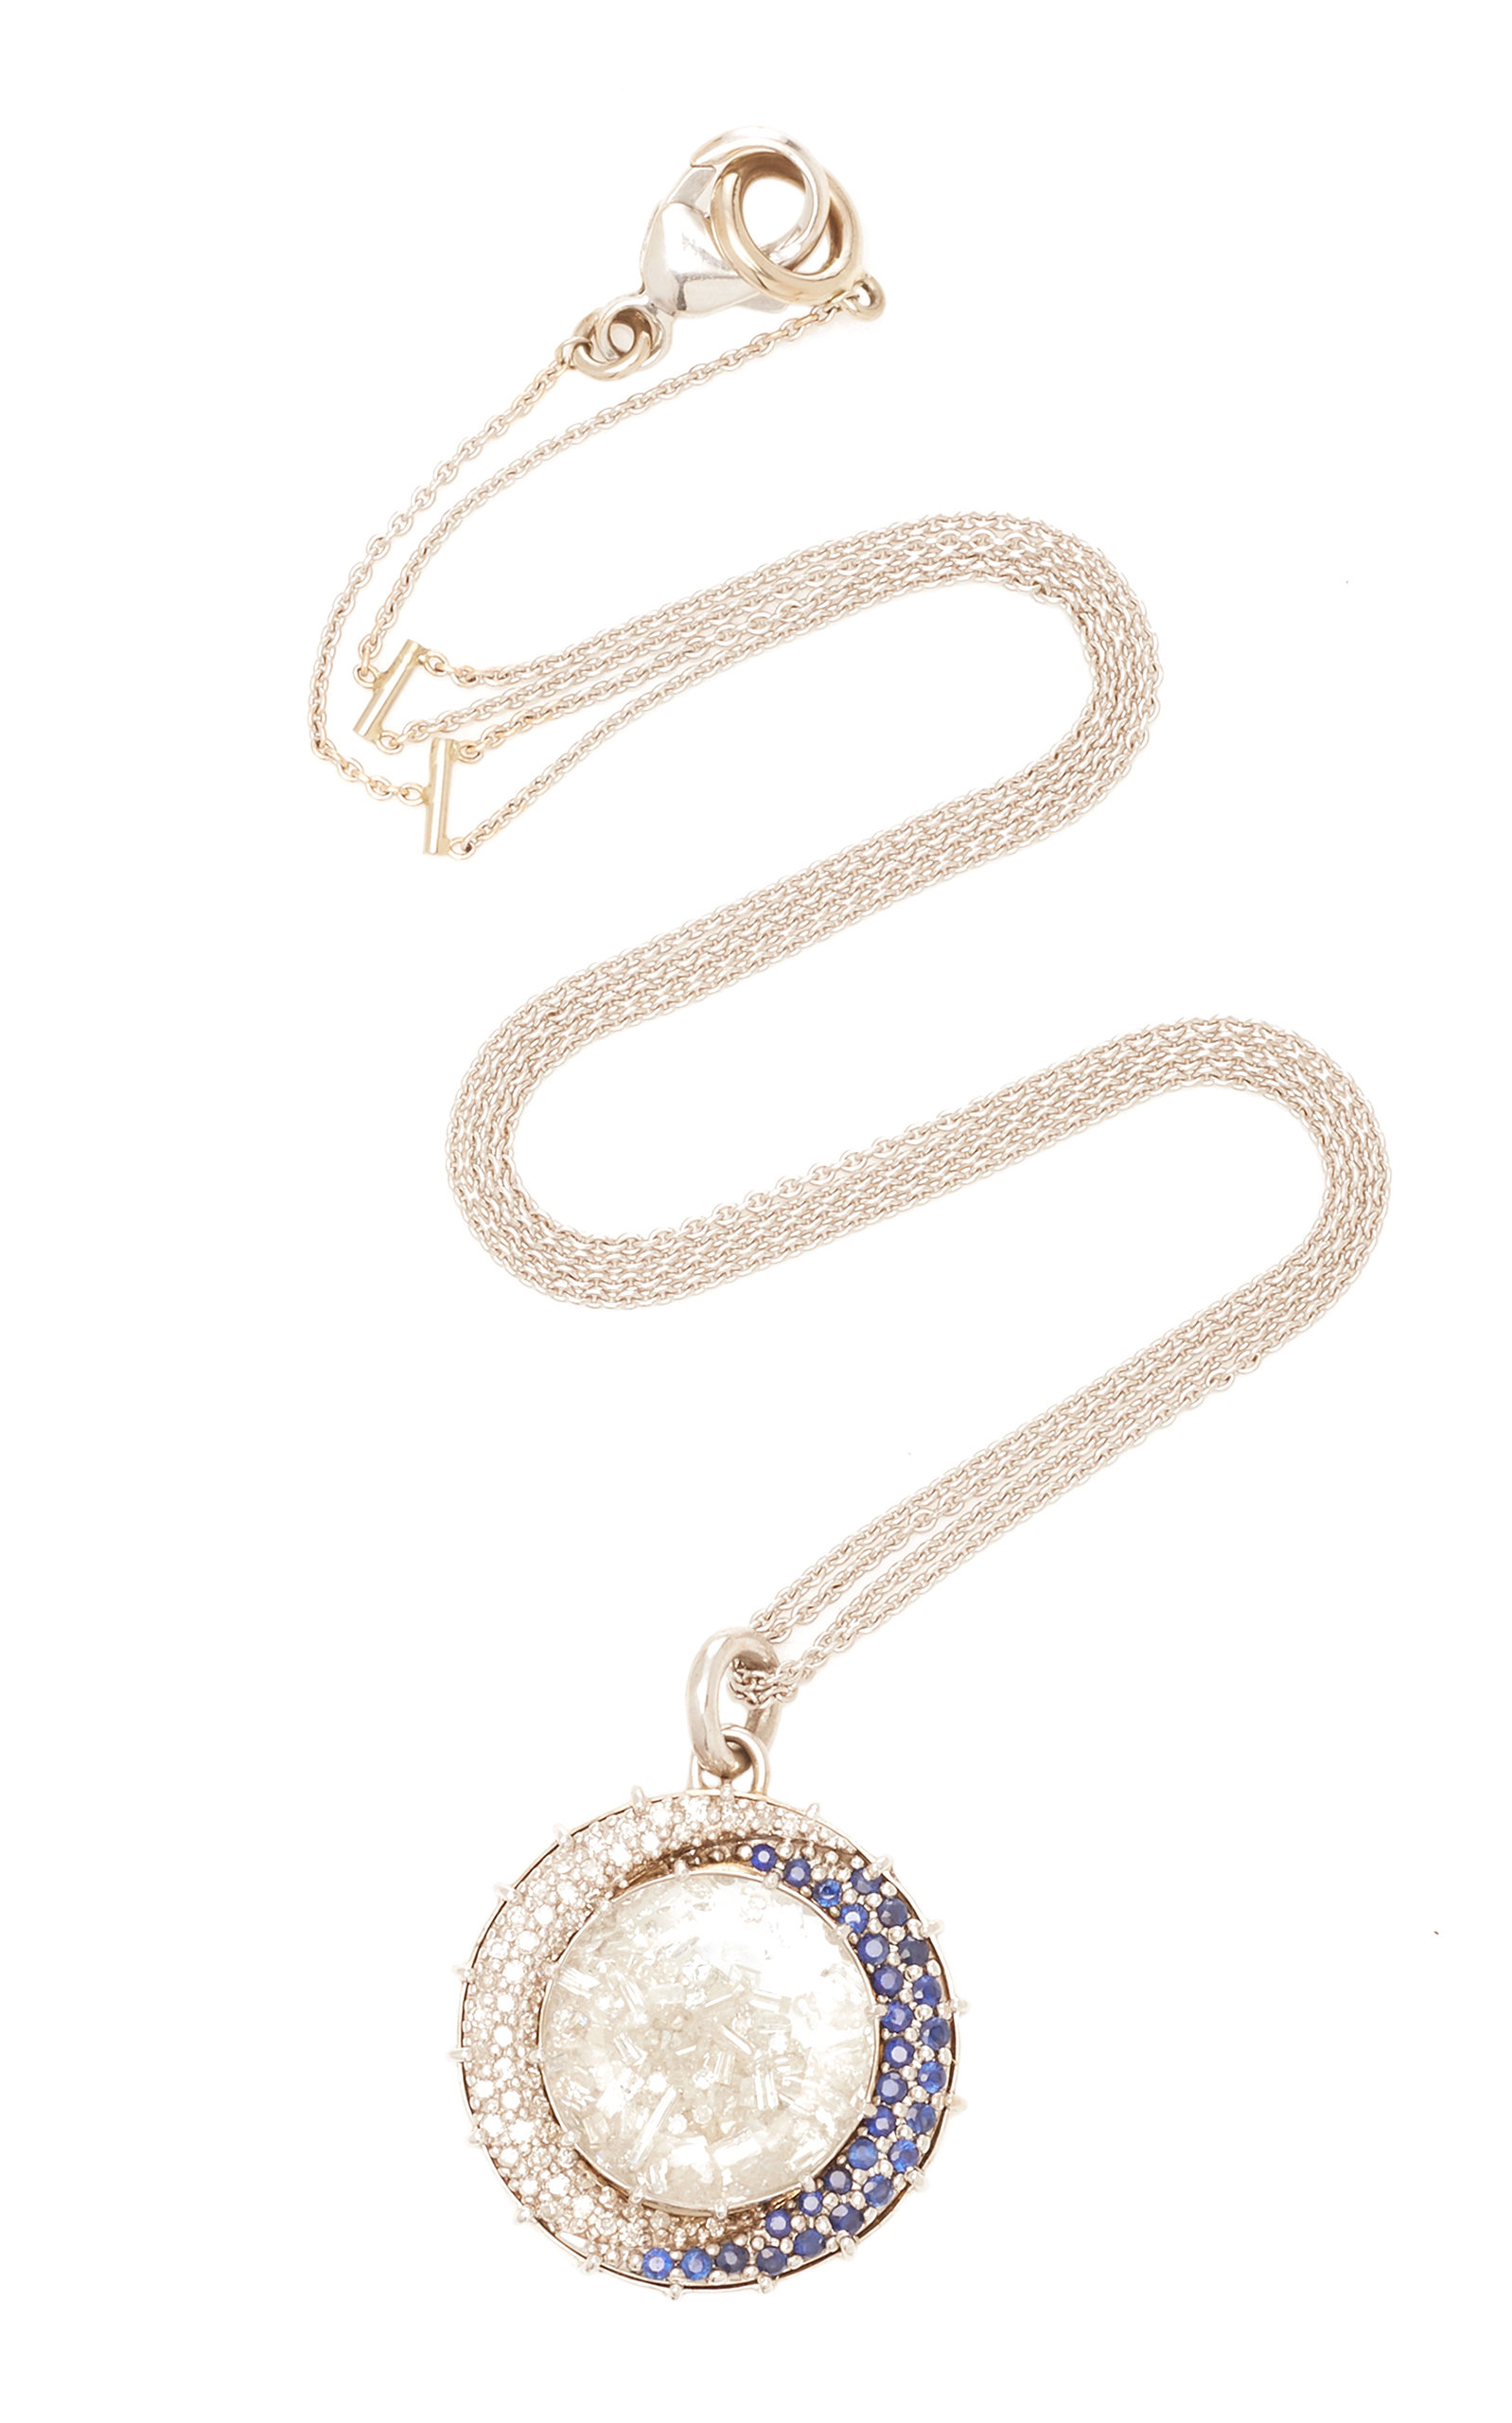 RENEE LEWIS SHAKE 18K GOLD DIAMOND AND SAPPHIRE NECKLACE